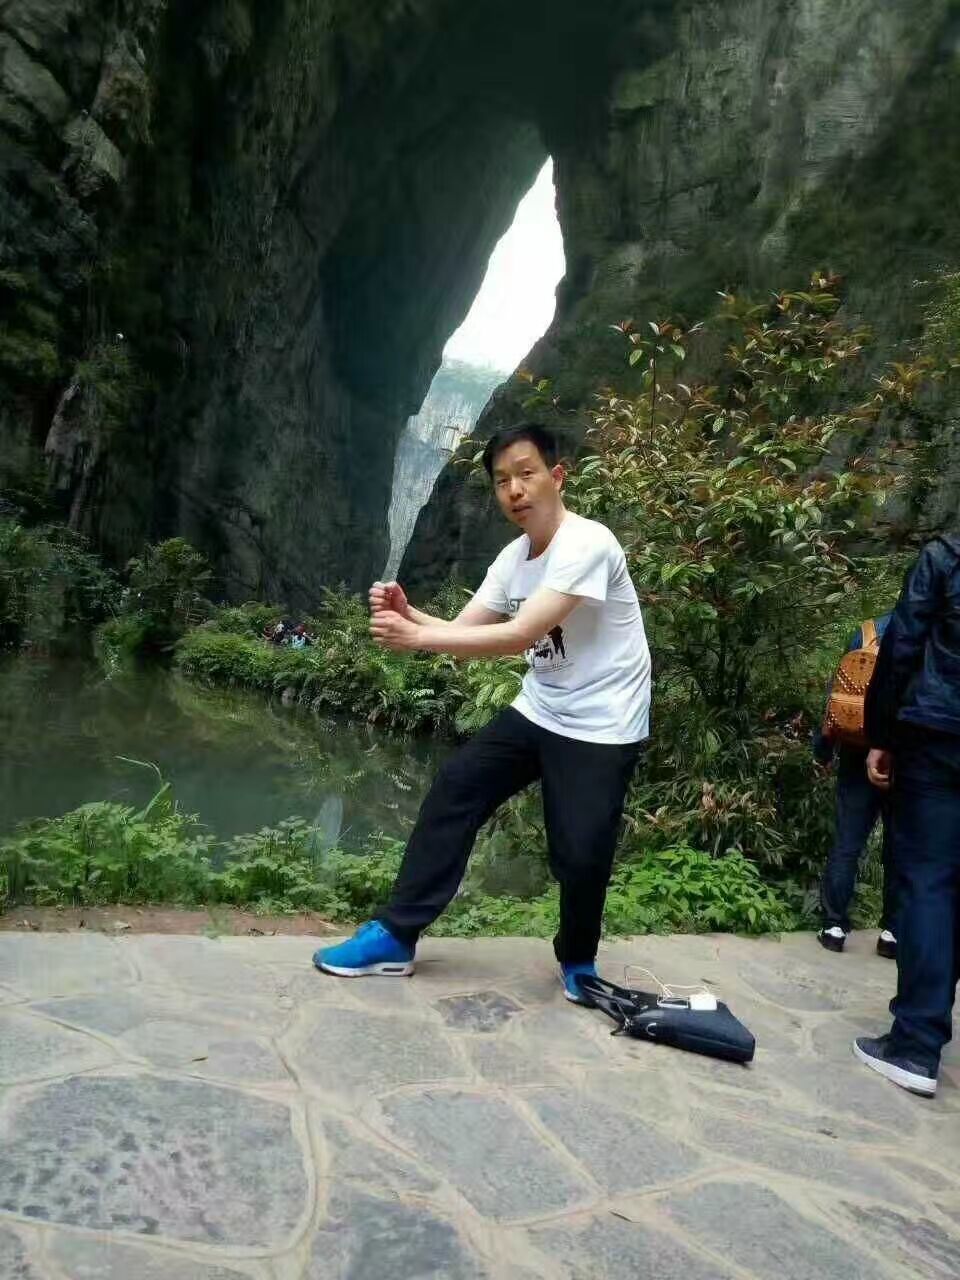 Chongqing Wulong Exploration Private Day Tour With the Lunch